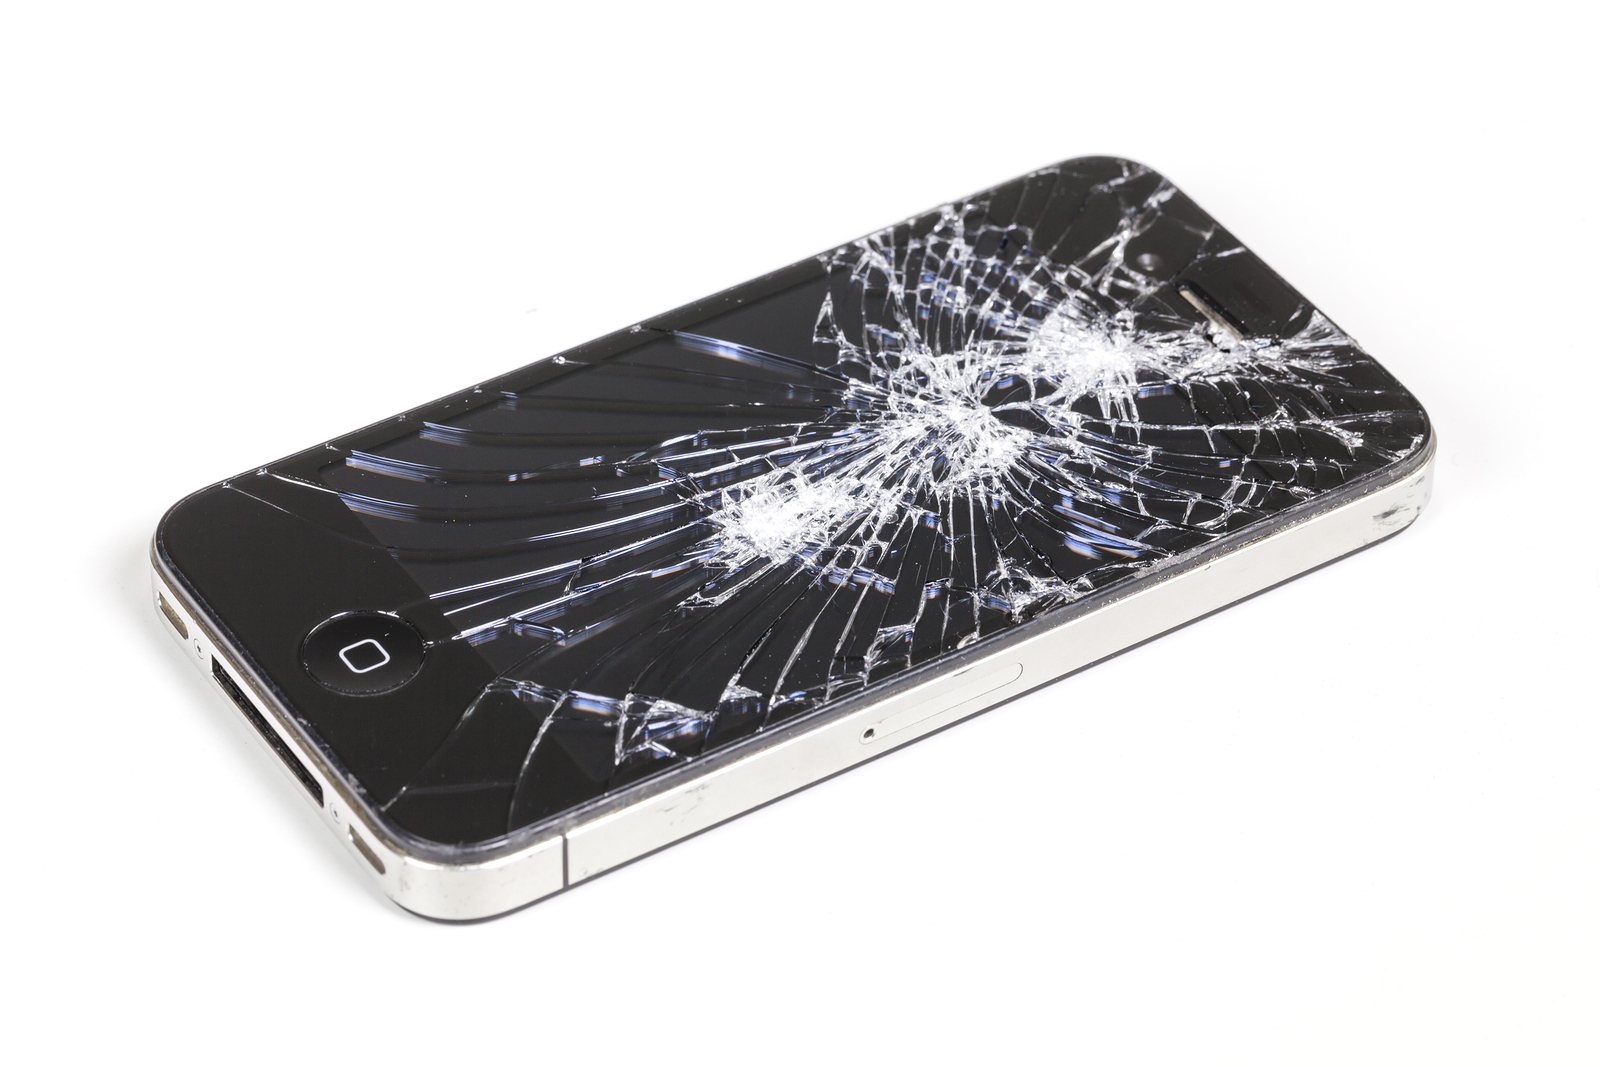 Iphone-With-Seriously-Broken-79342543.jpg